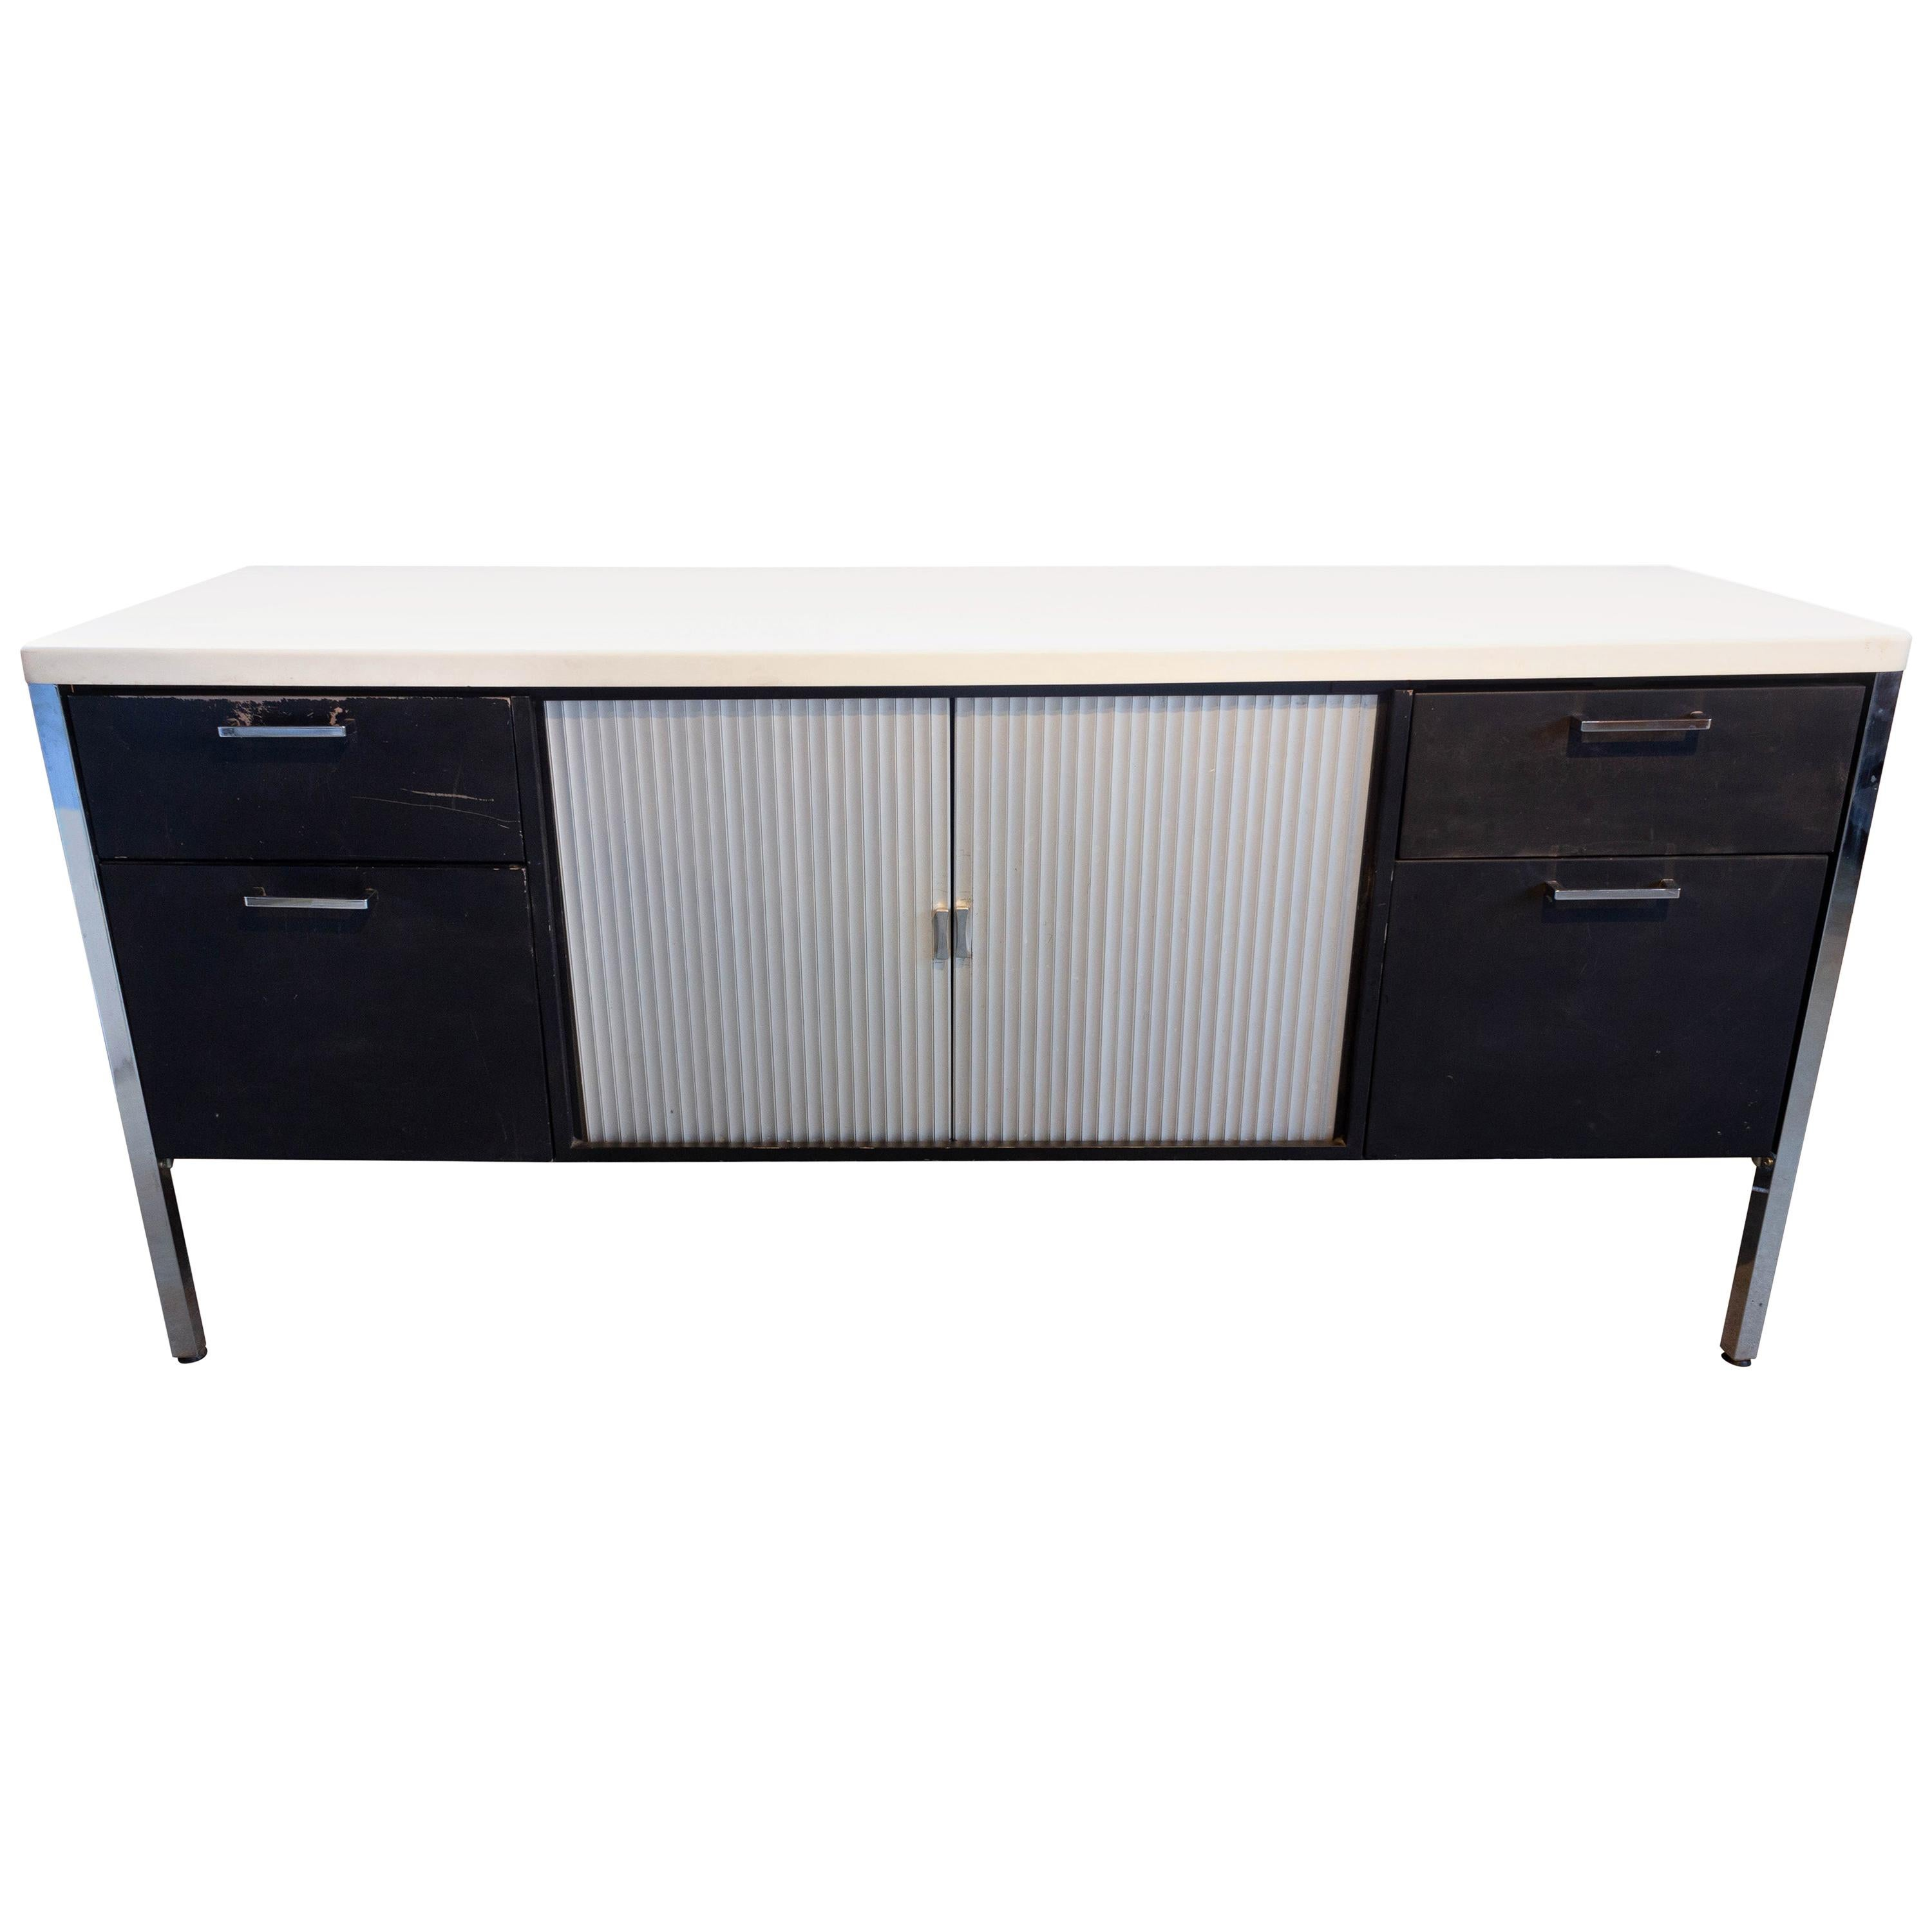 Midcentury Black and White Low Credenza by Knoll, circa 1960